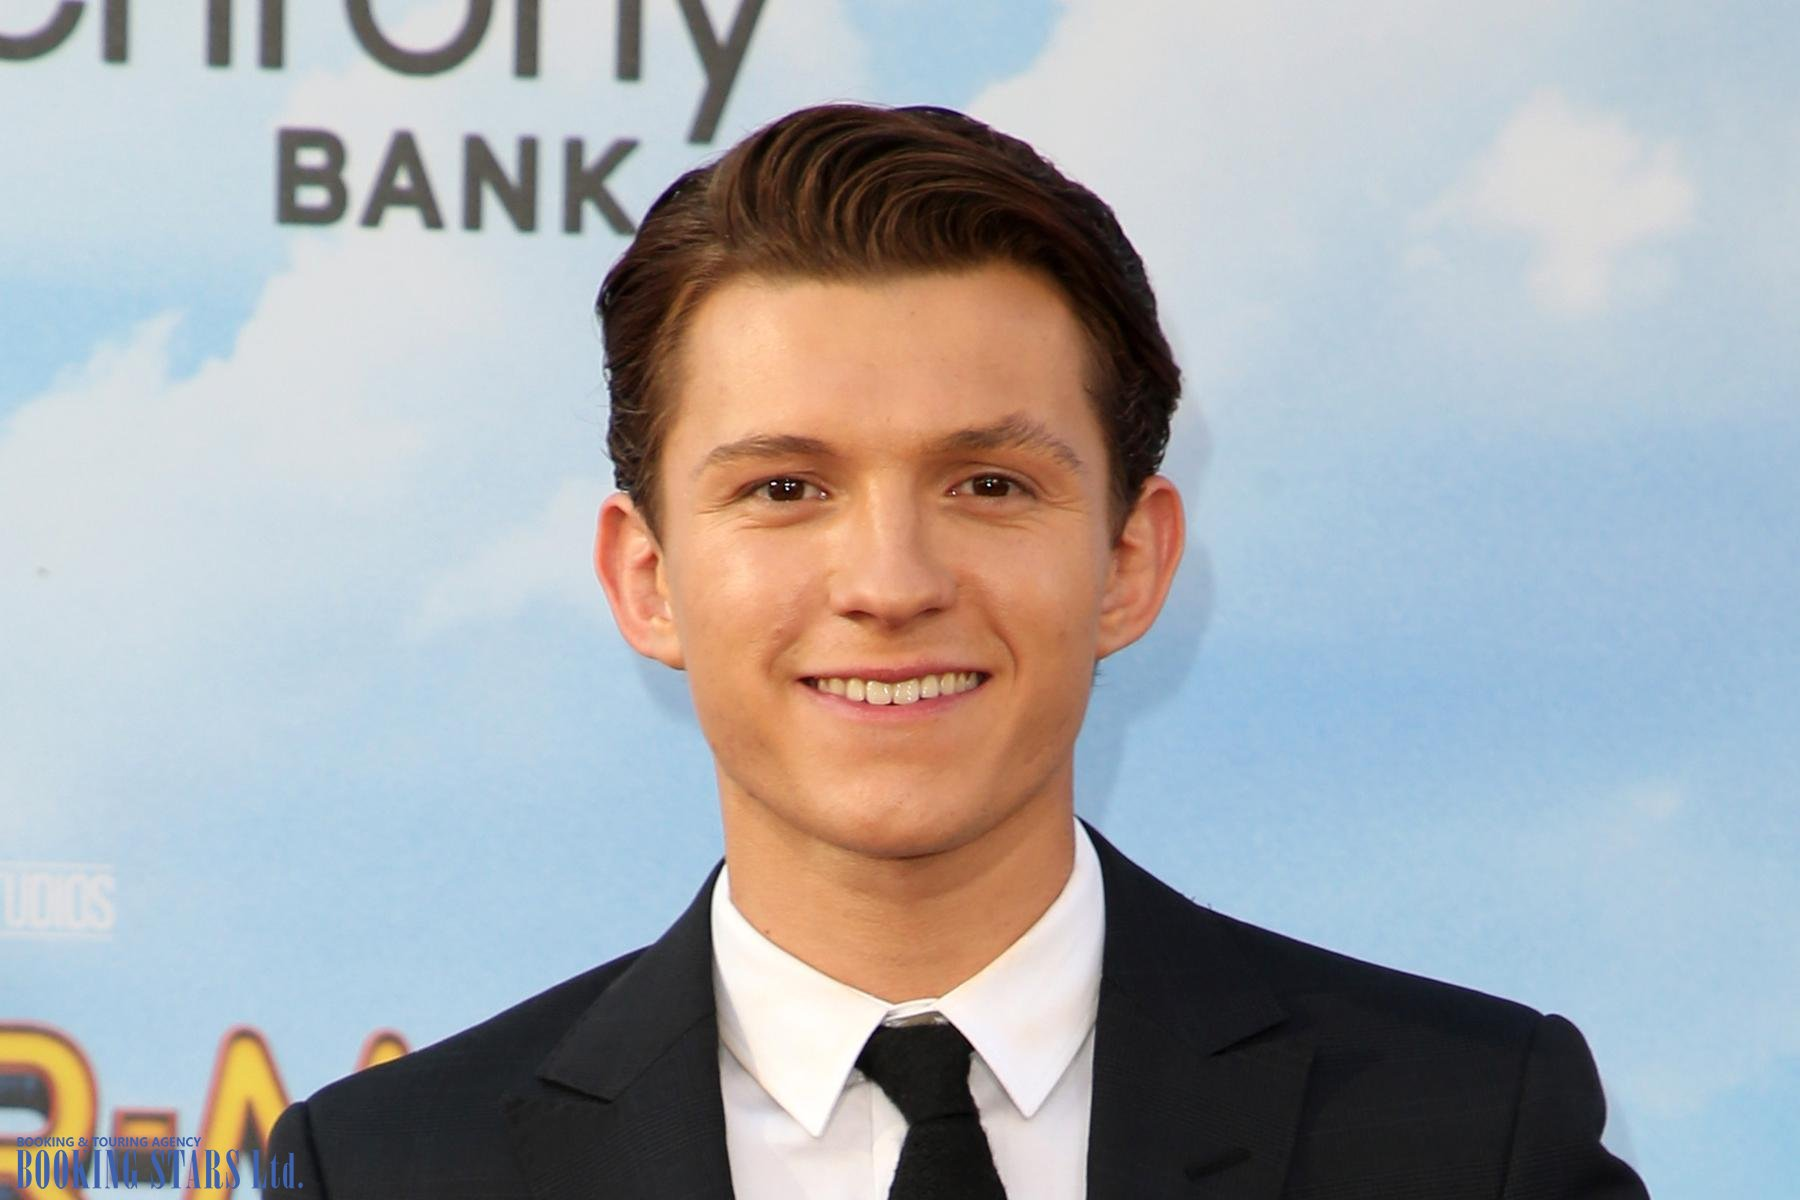 images Tom Holland (born 1996)